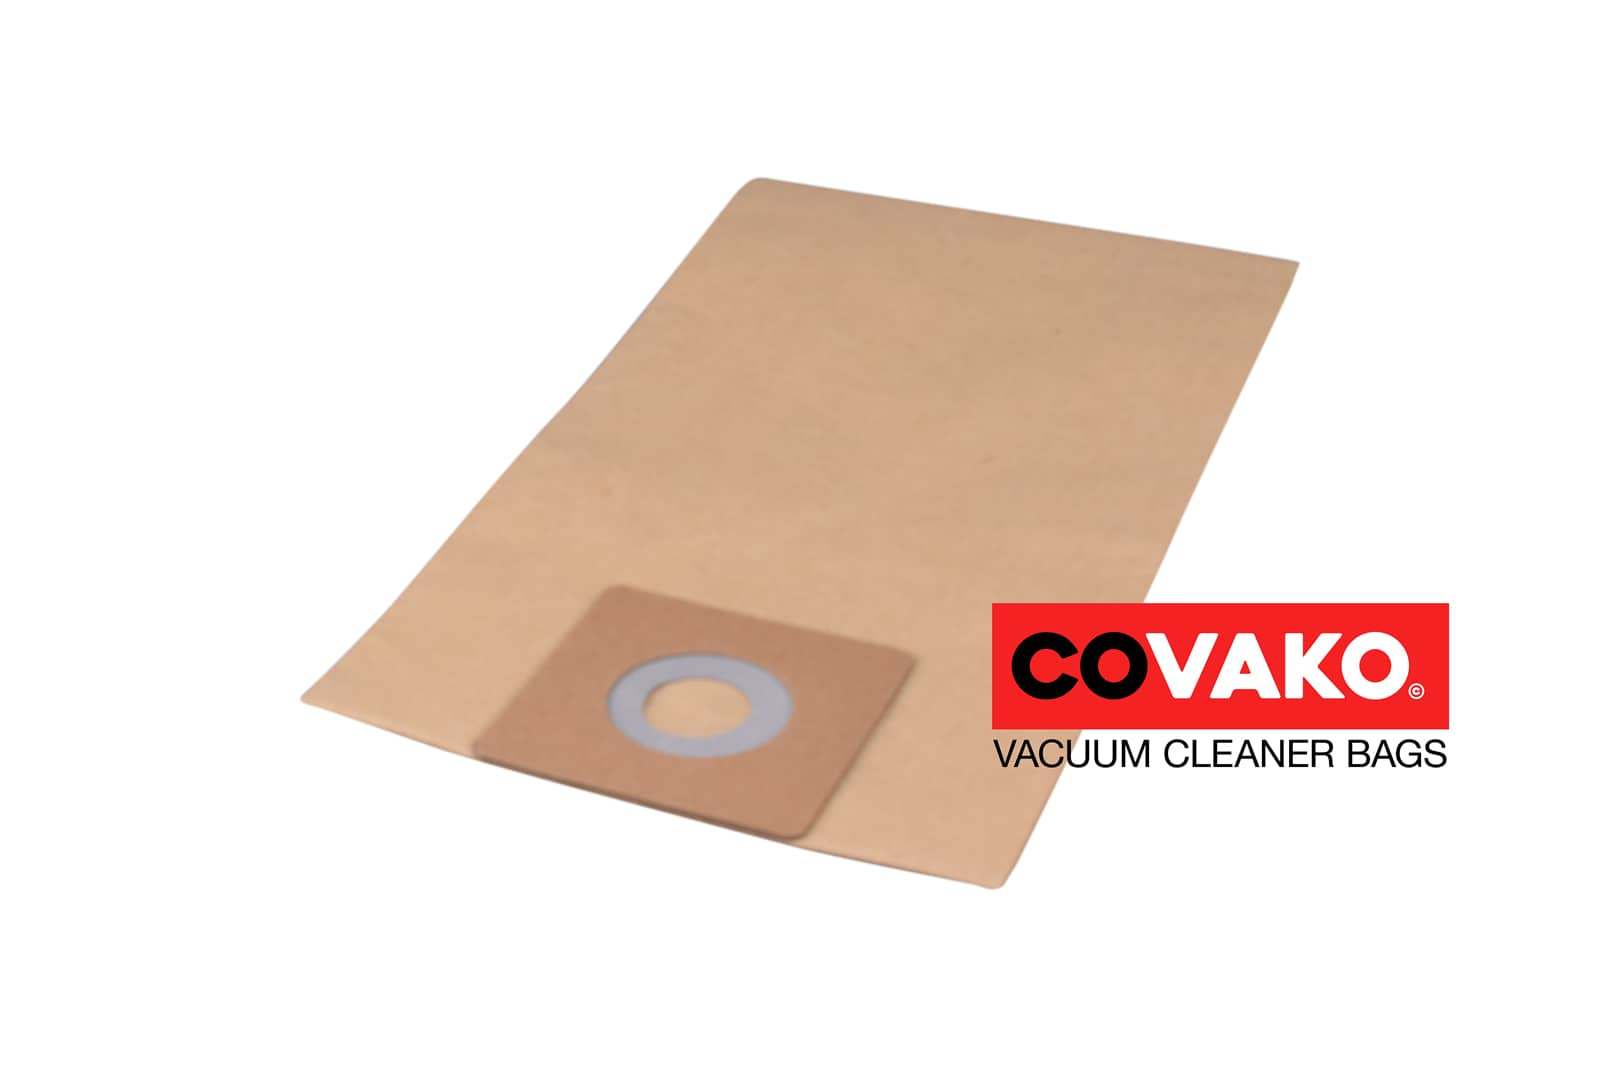 Gansow YP 1/6 ECO B / Paper - Gansow vacuum cleaner bags